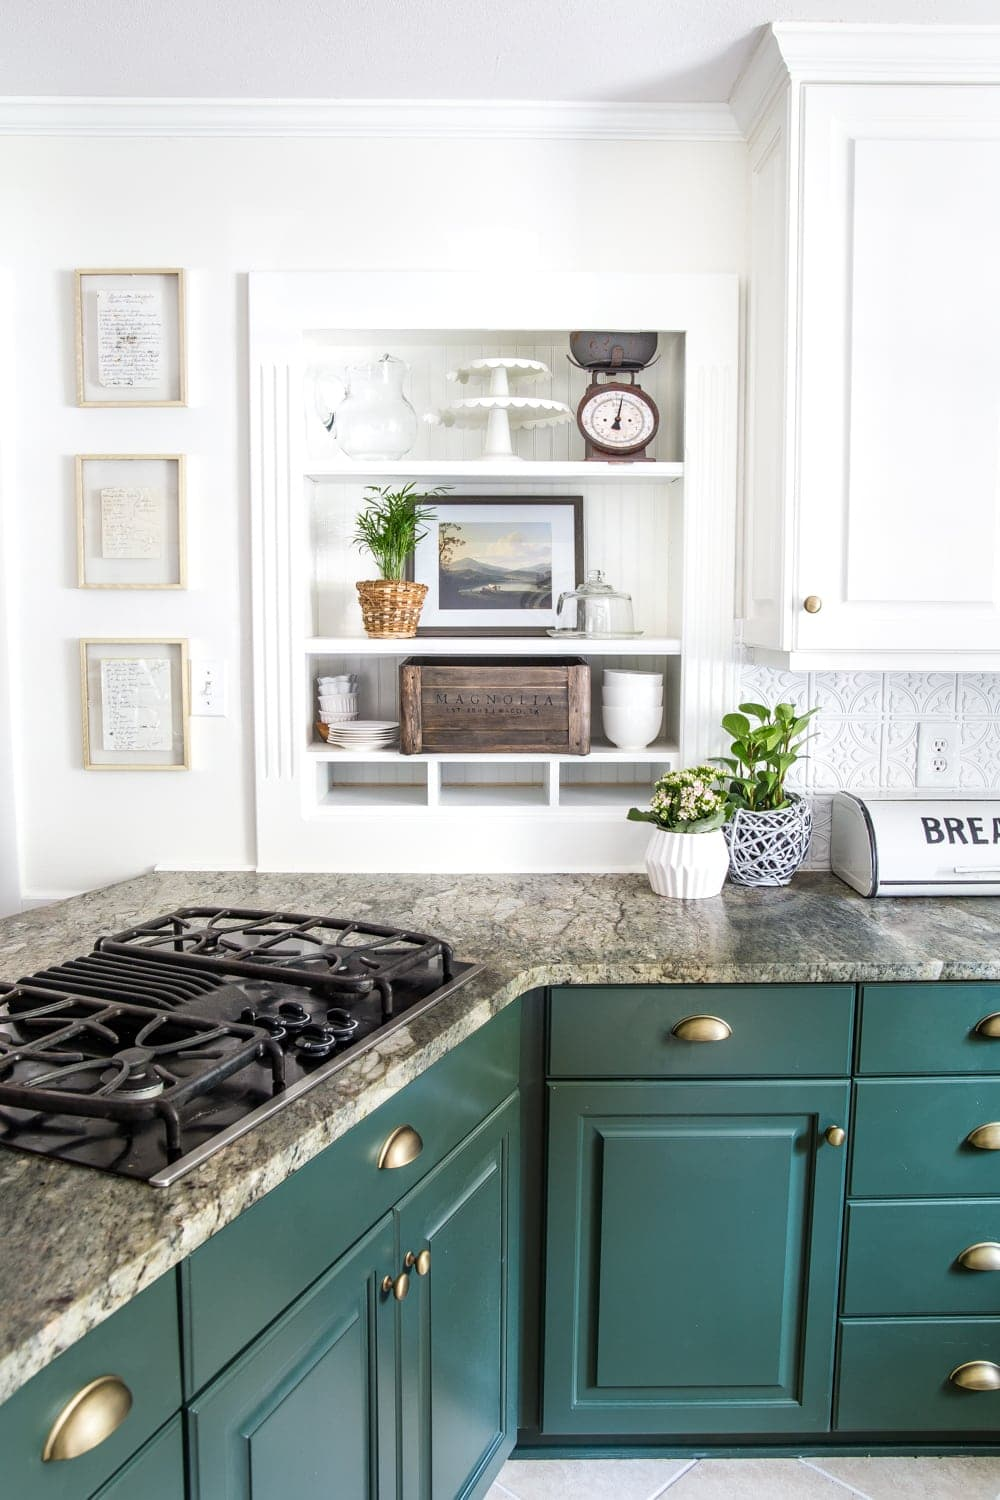 Kitchen shelves with dark green cabinets and framed handwritten recipes for art